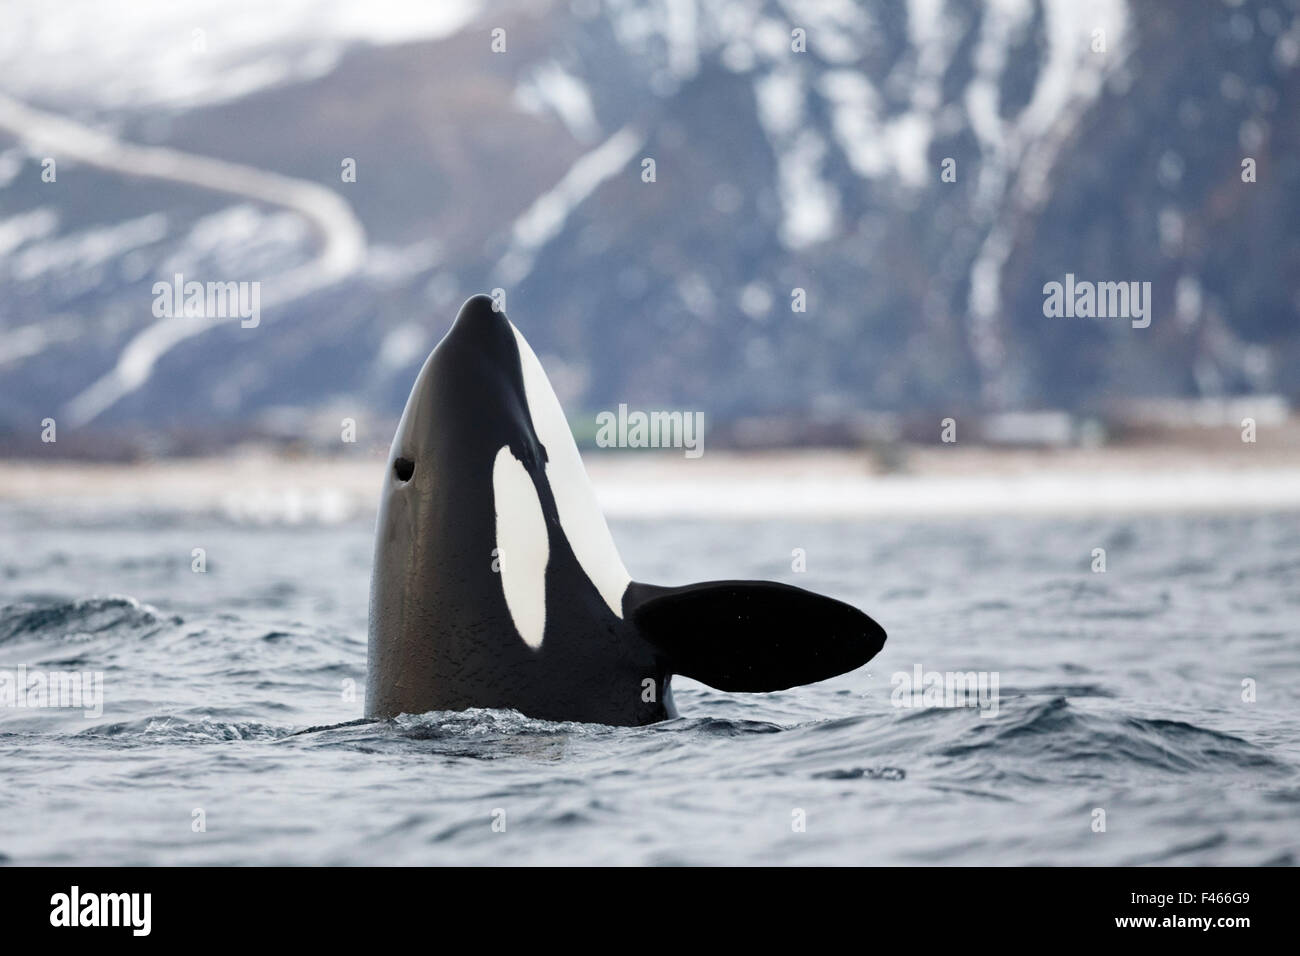 Killer whale / orca (Orcinus orca) spyhopping. Andfjorden, close to Andoya, Nordland, Northern Norway, January. - Stock Image